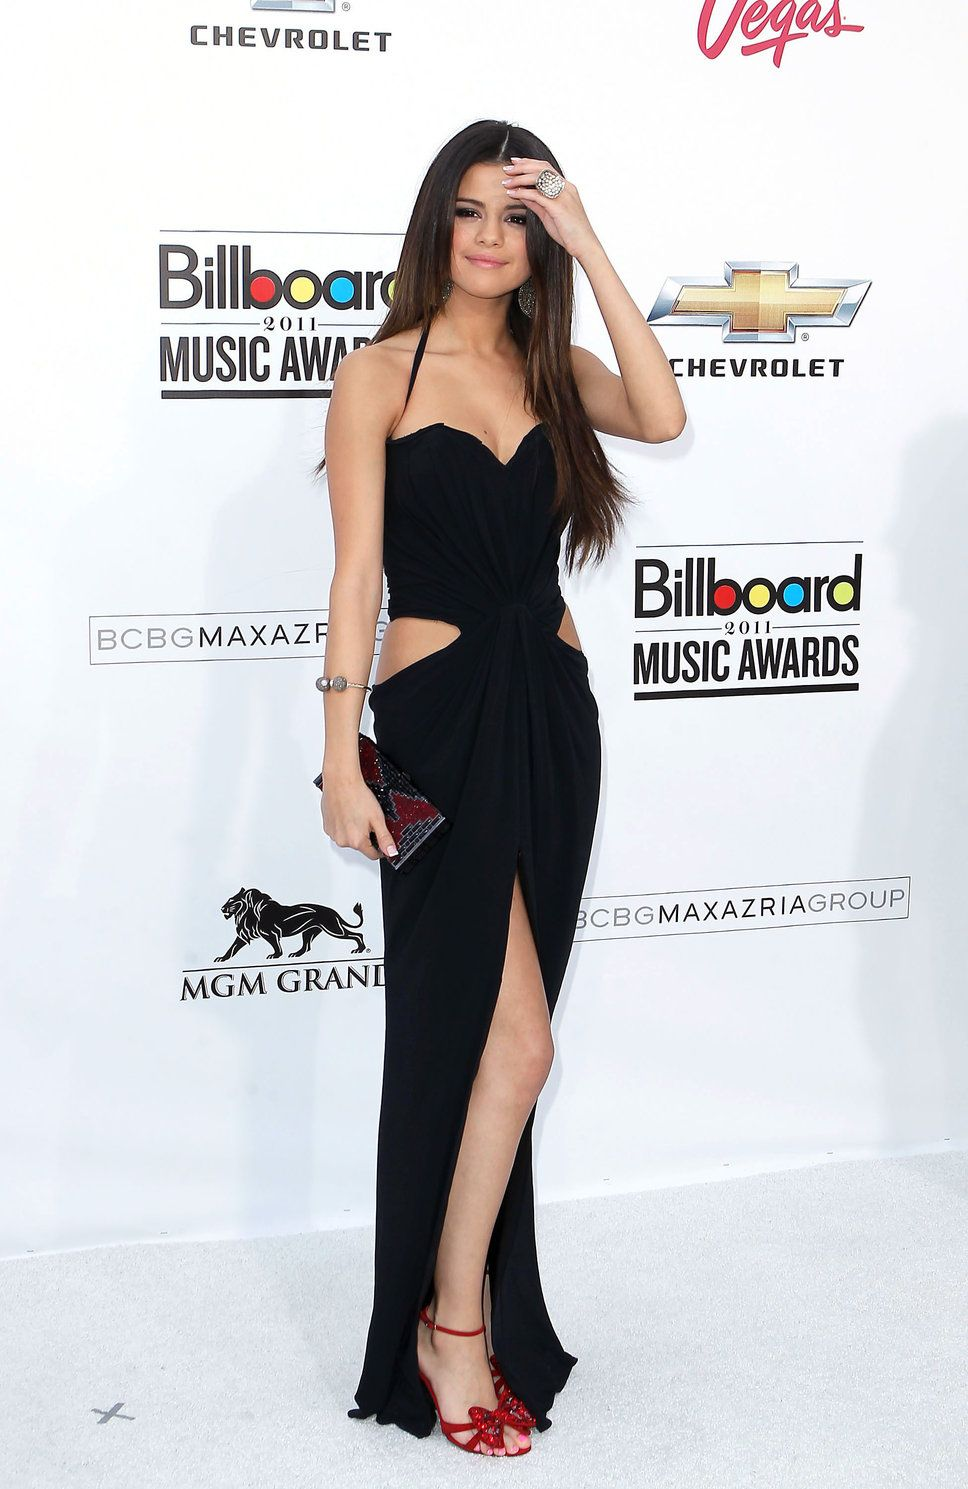 SELENA GOMEZ in black | Selena Gomez Cut Out Black Dress photo ...